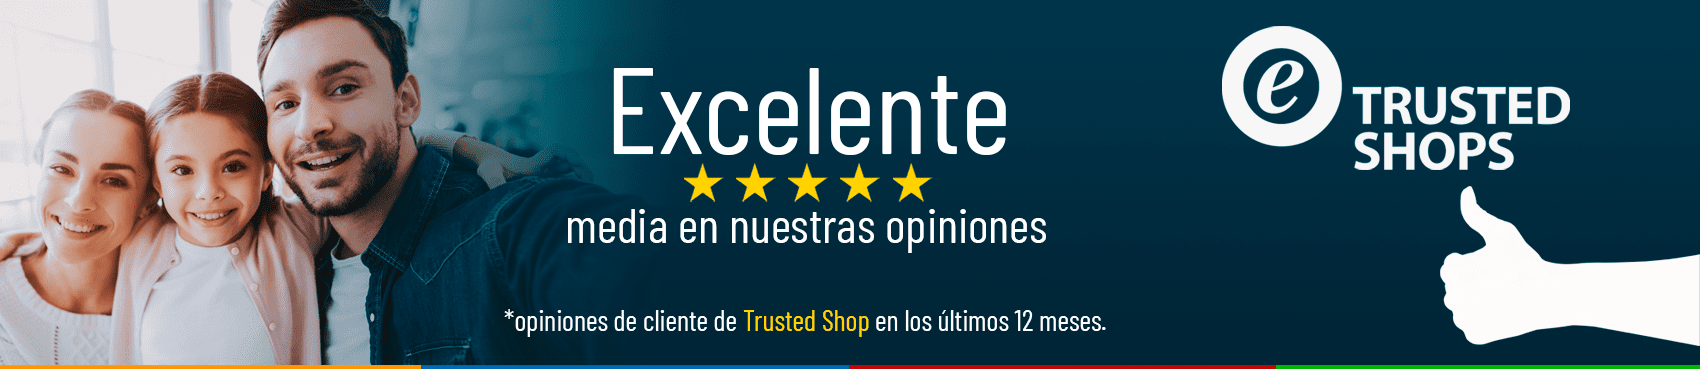 2020 Trusted Shop Opiniones